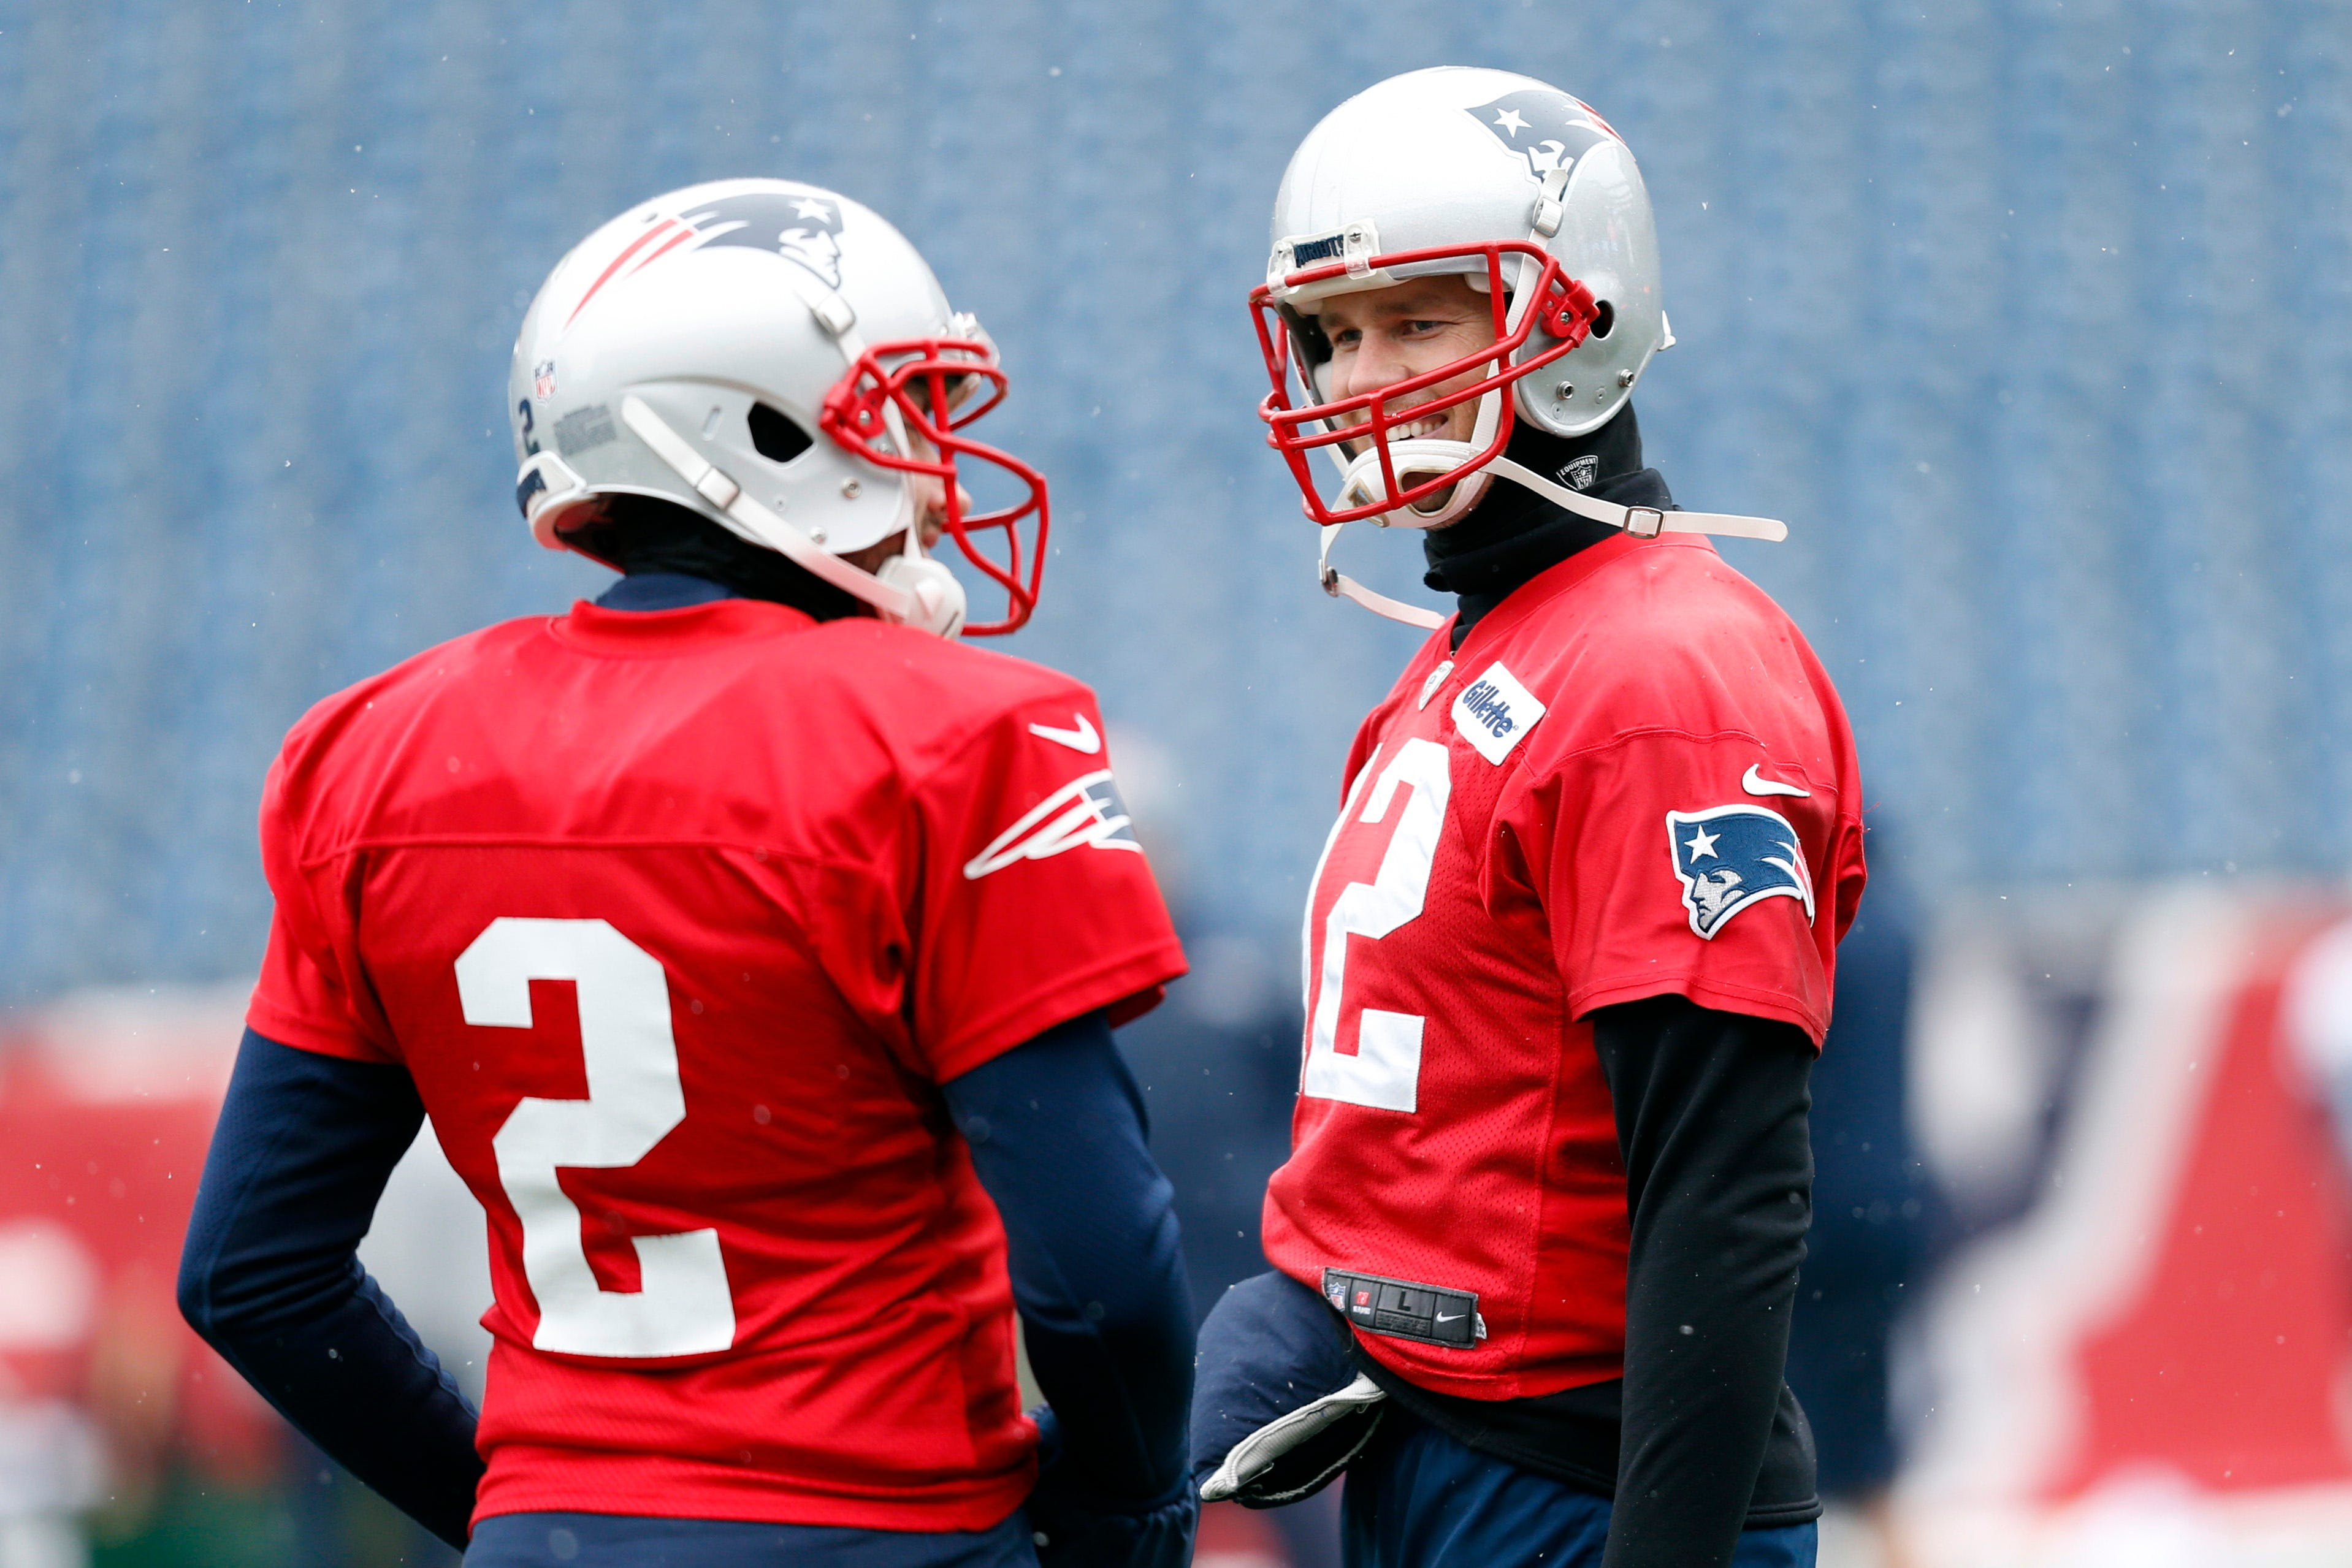 Patriots' Tom Brady limited in practice by hand injury, skips interview with media